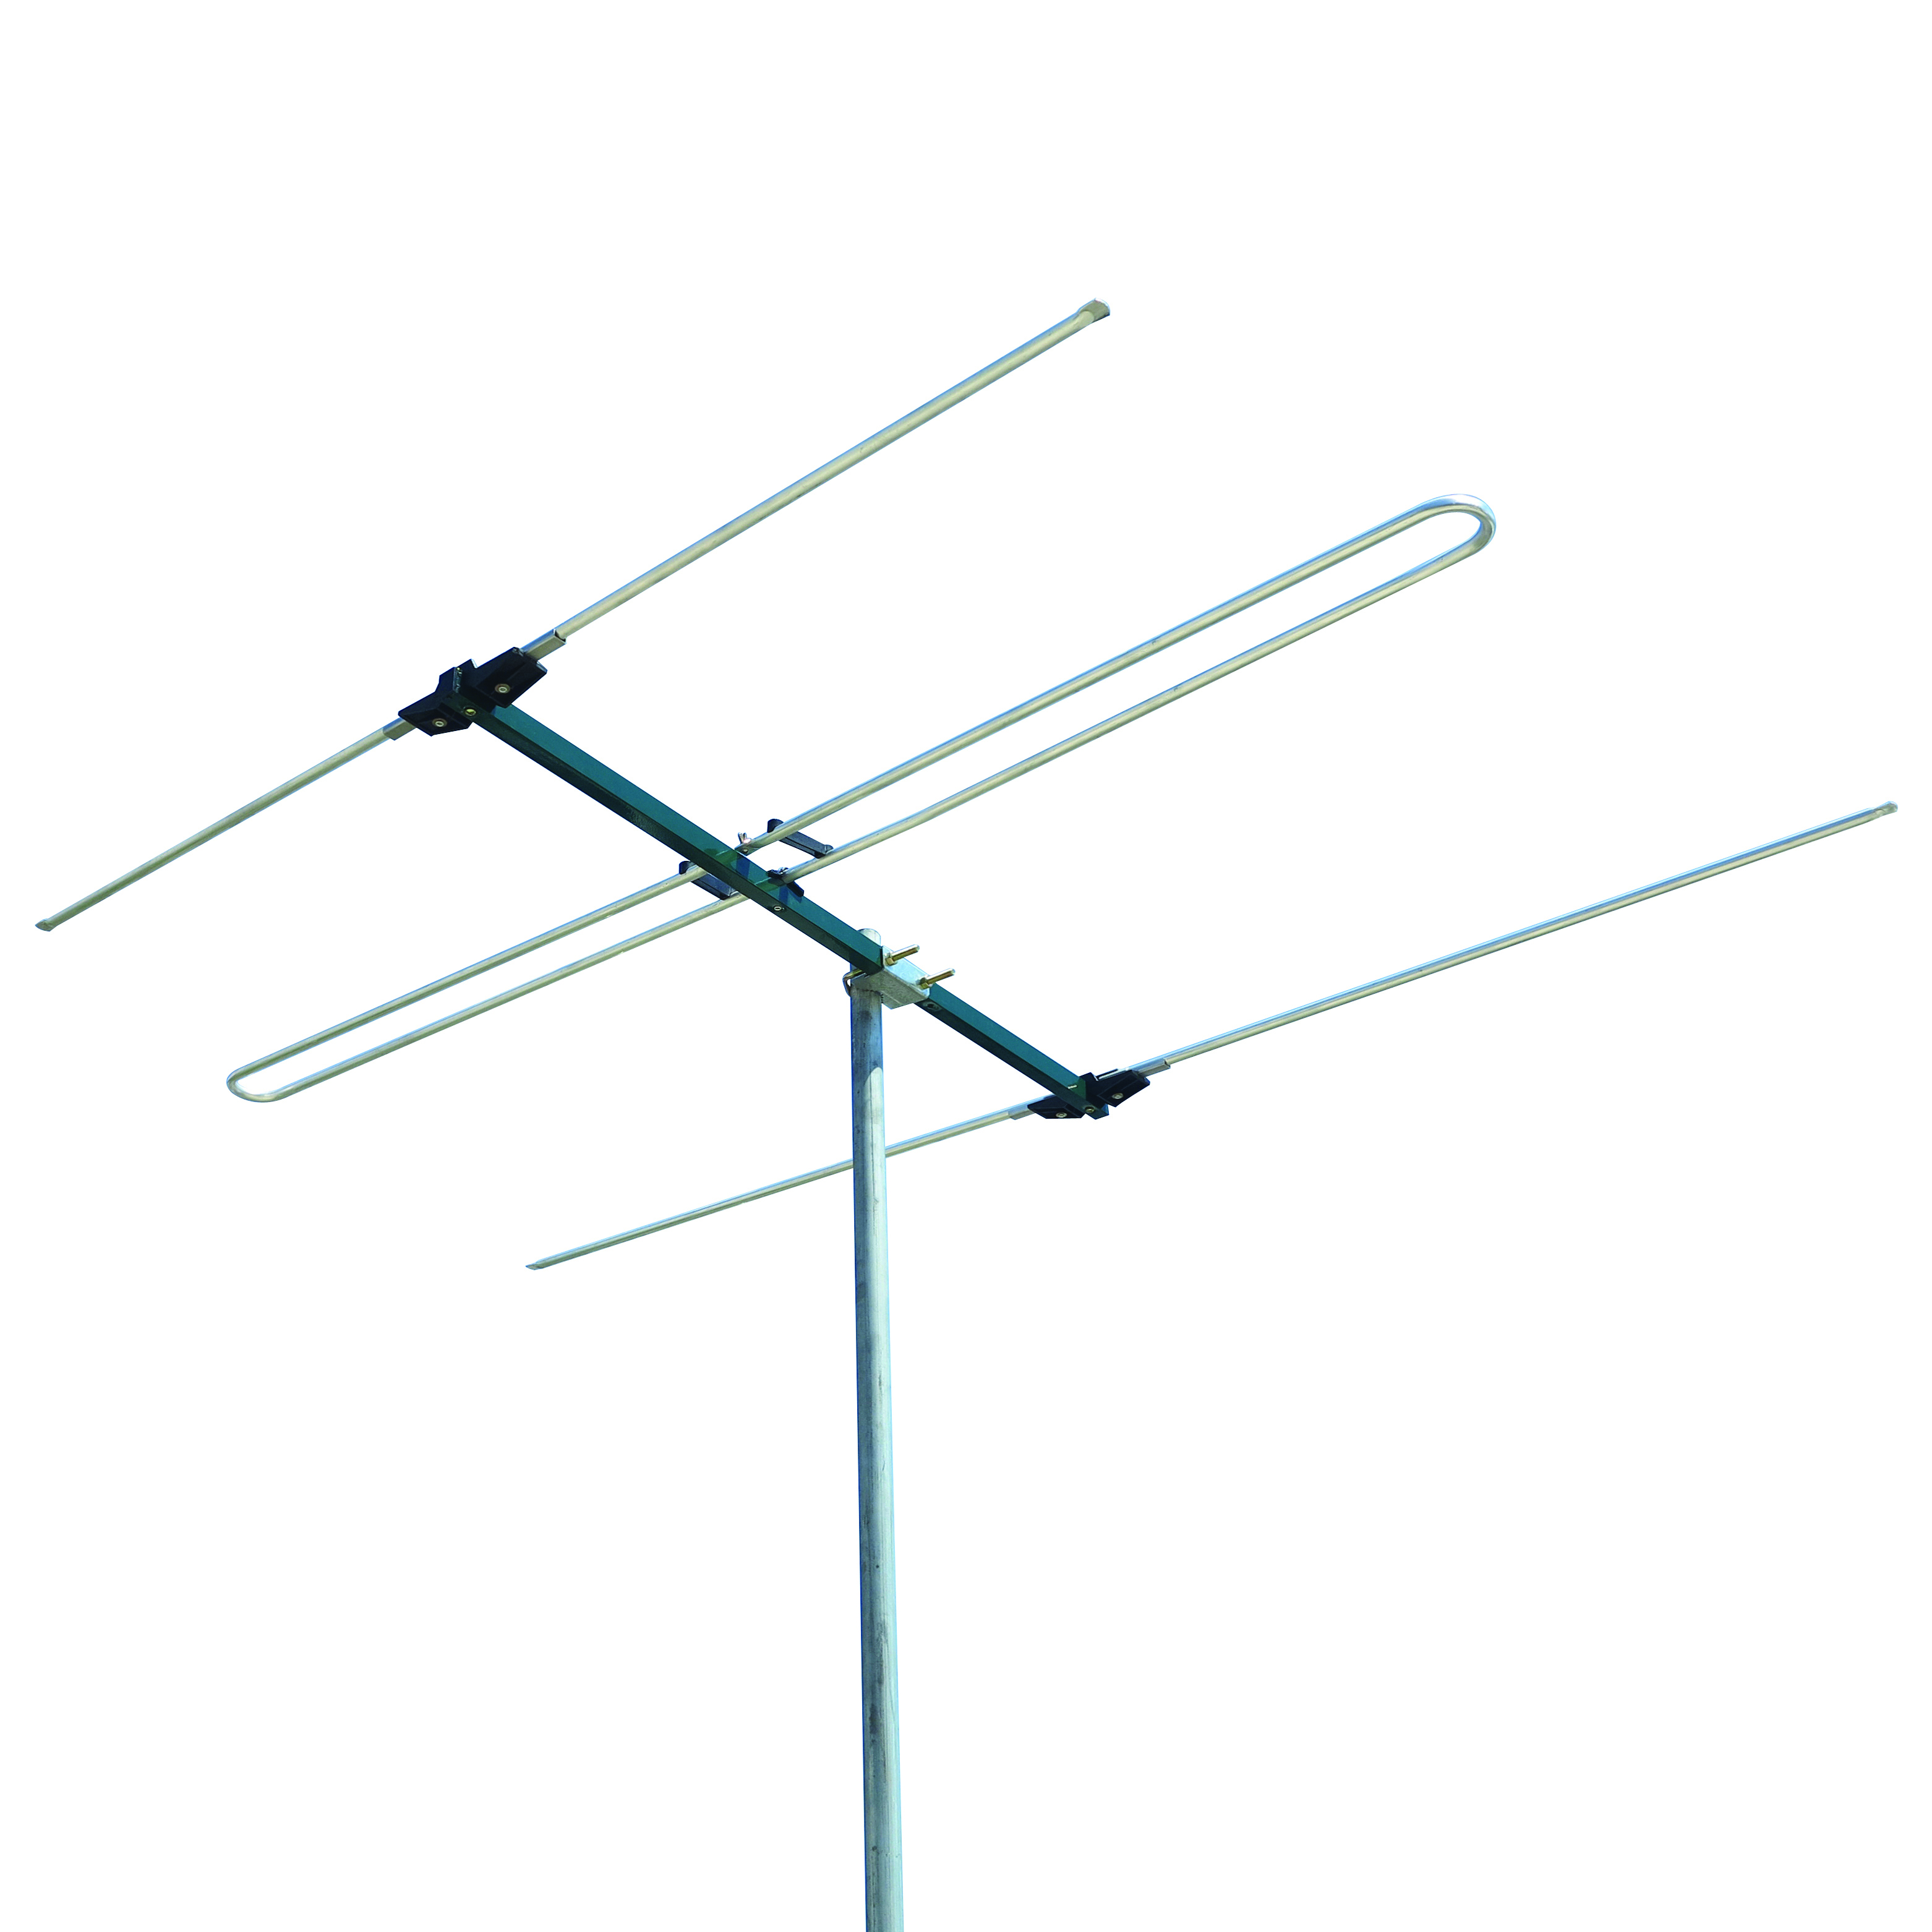 03mm Fm3 Fm Antenna 88 108mhz With Balun 3 Elements Low Pass Filter For 108 Mhz Downloads